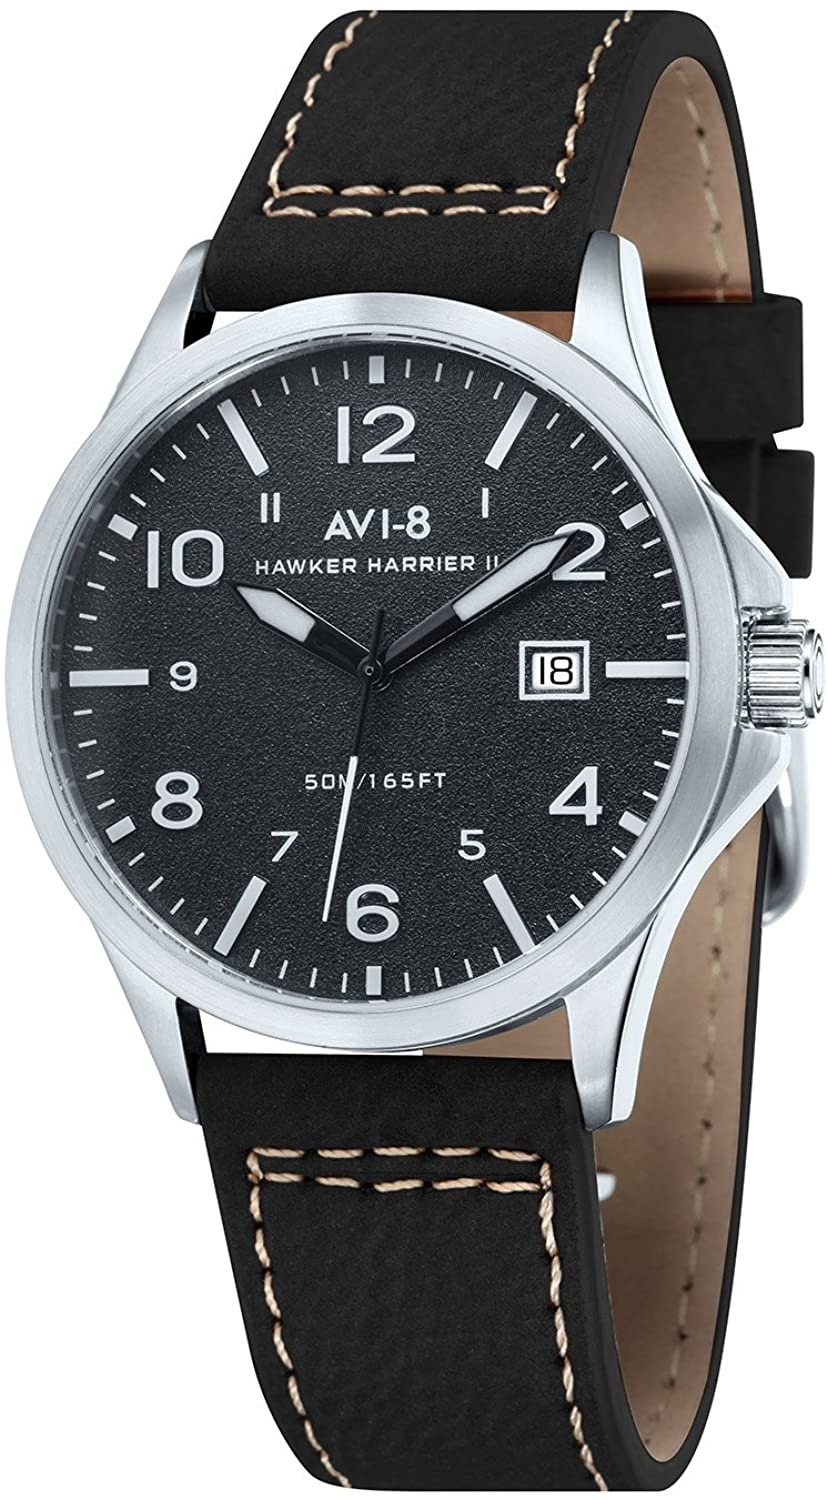 AVI-8 Hawker Harrier Ii Men's Quartz Watch  AV-SET1-05 AV-4019-05